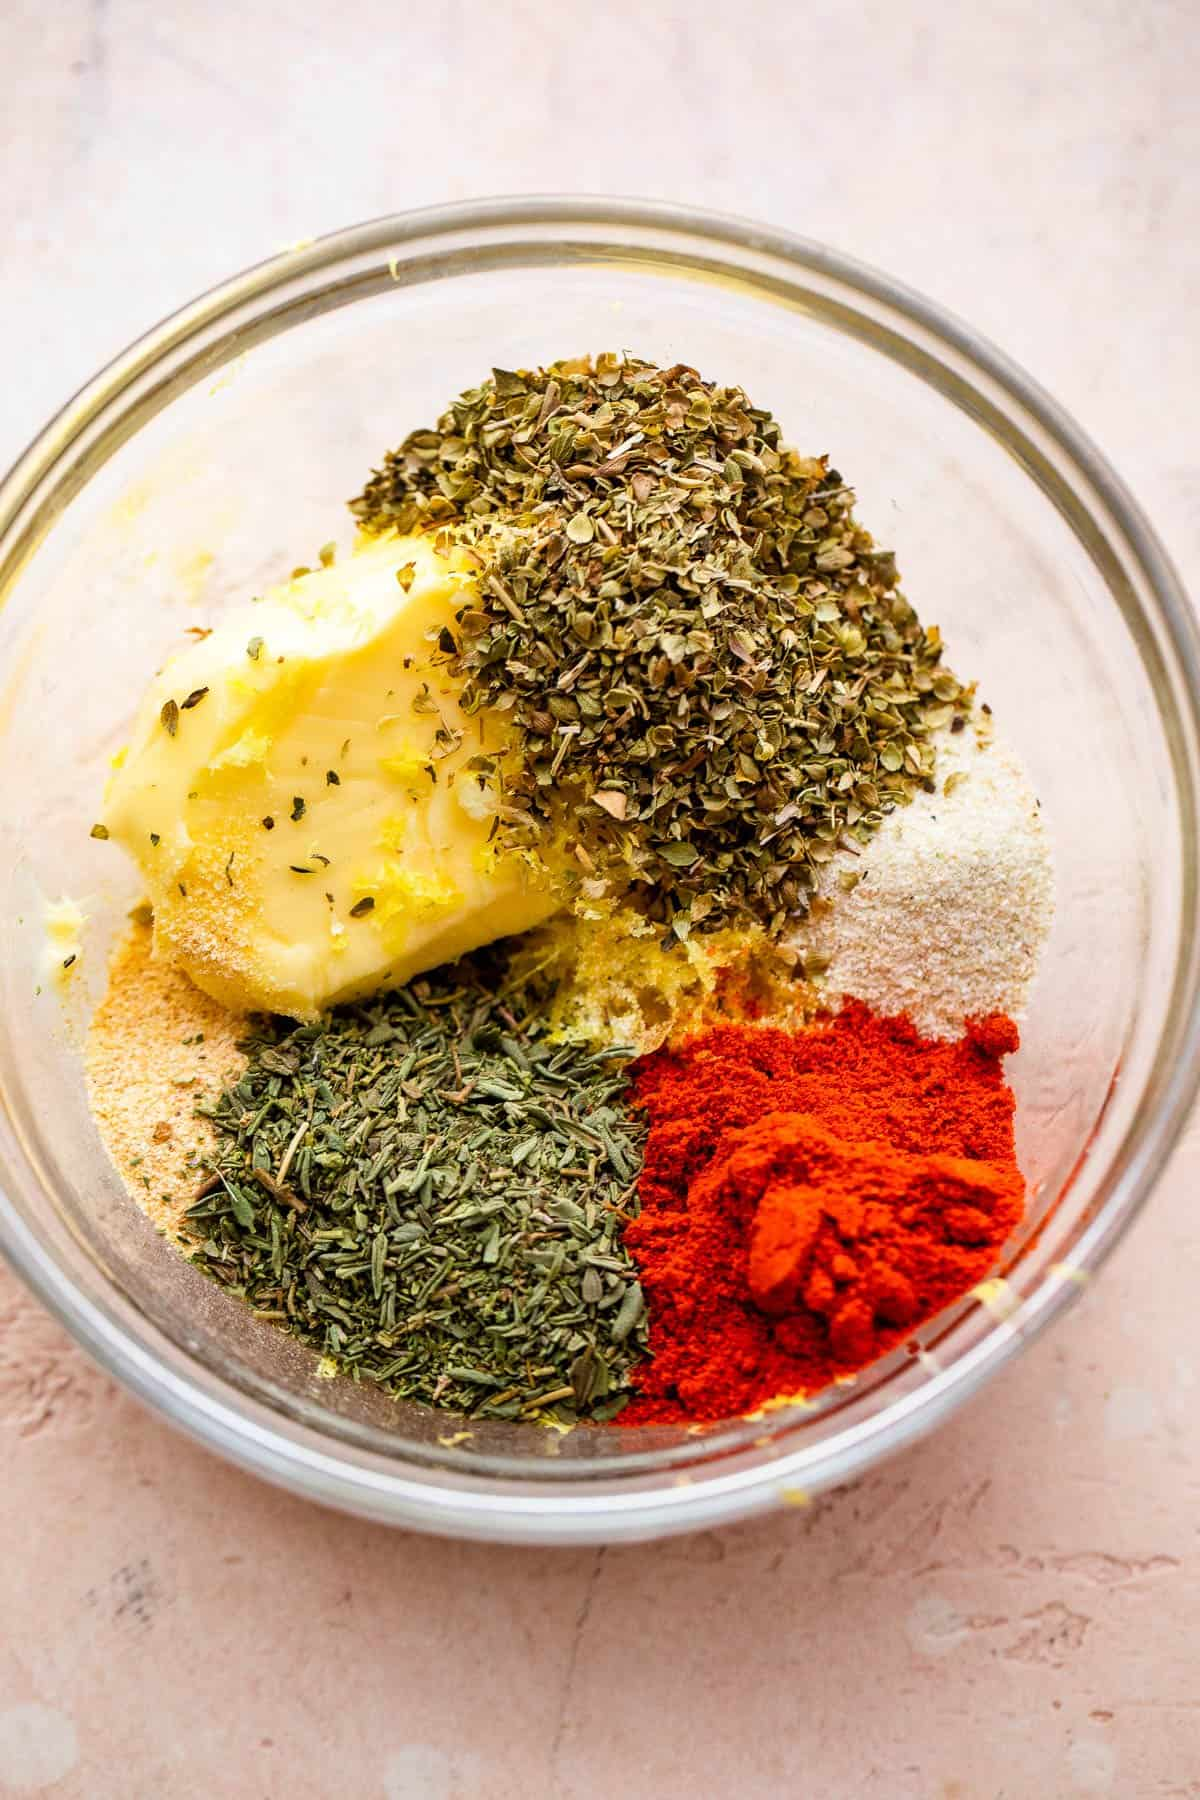 seasonings arranged in a round glass mixing bowl